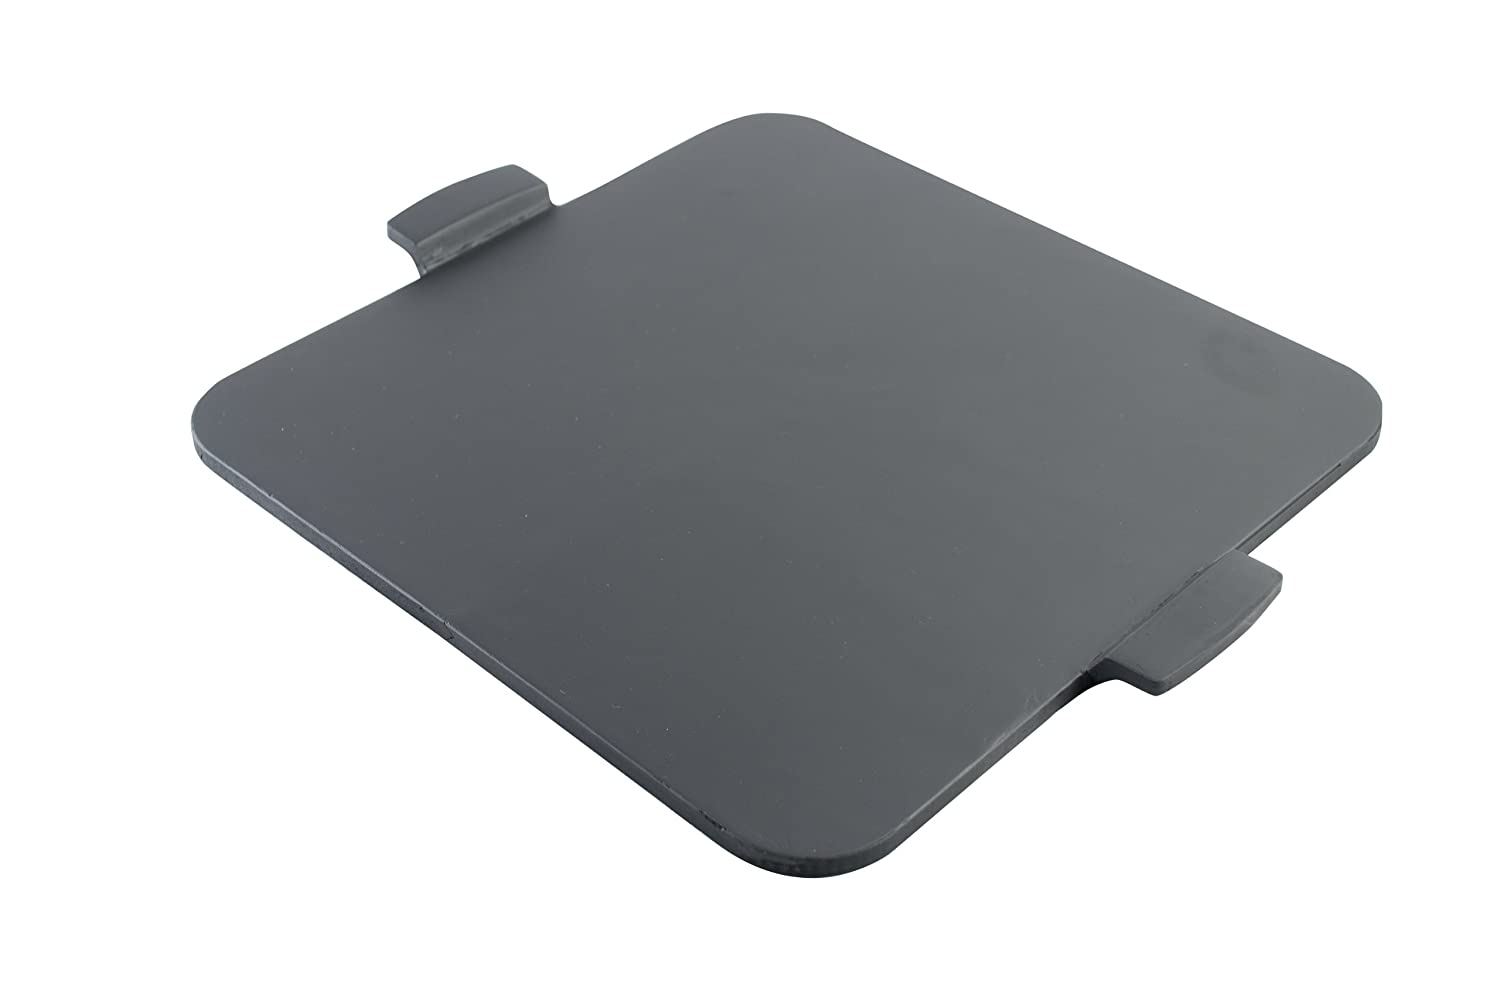 "PizzaCraft 14.5"" Square Glazed Pizza Grilling Stone with Handles - PC0111 (Black), 14.5 14.5"